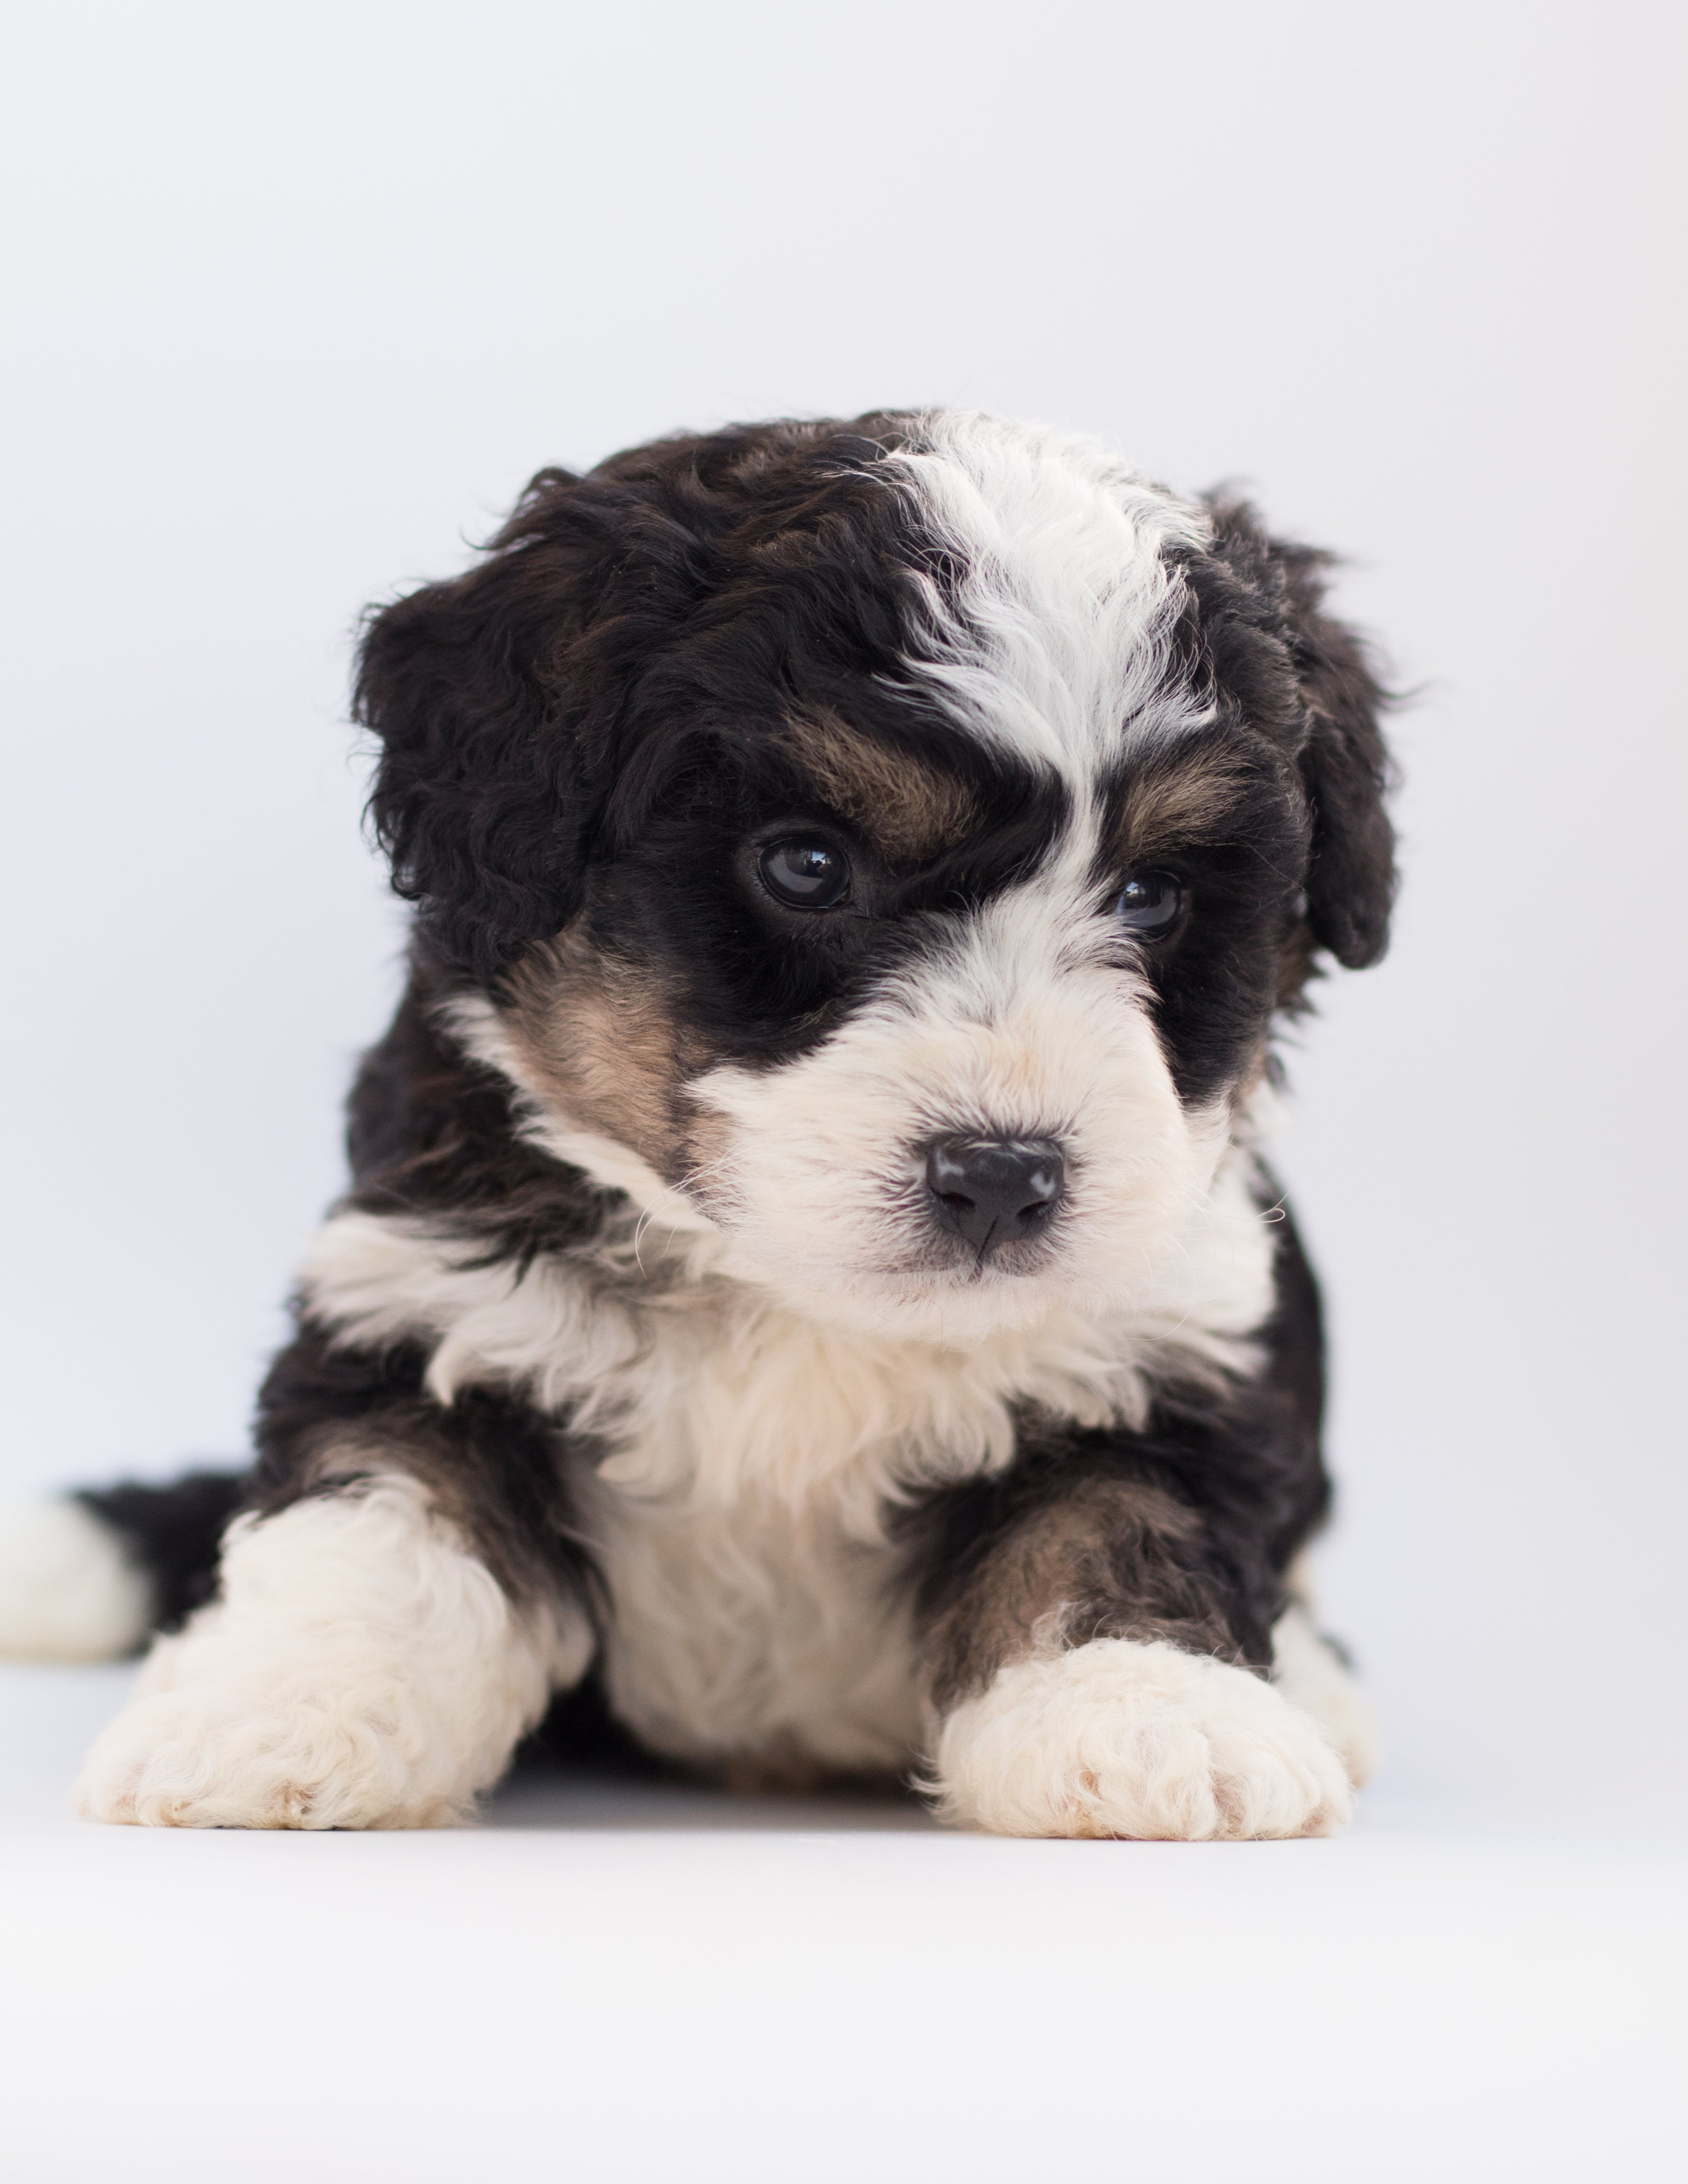 Black and White Poodle Puppy